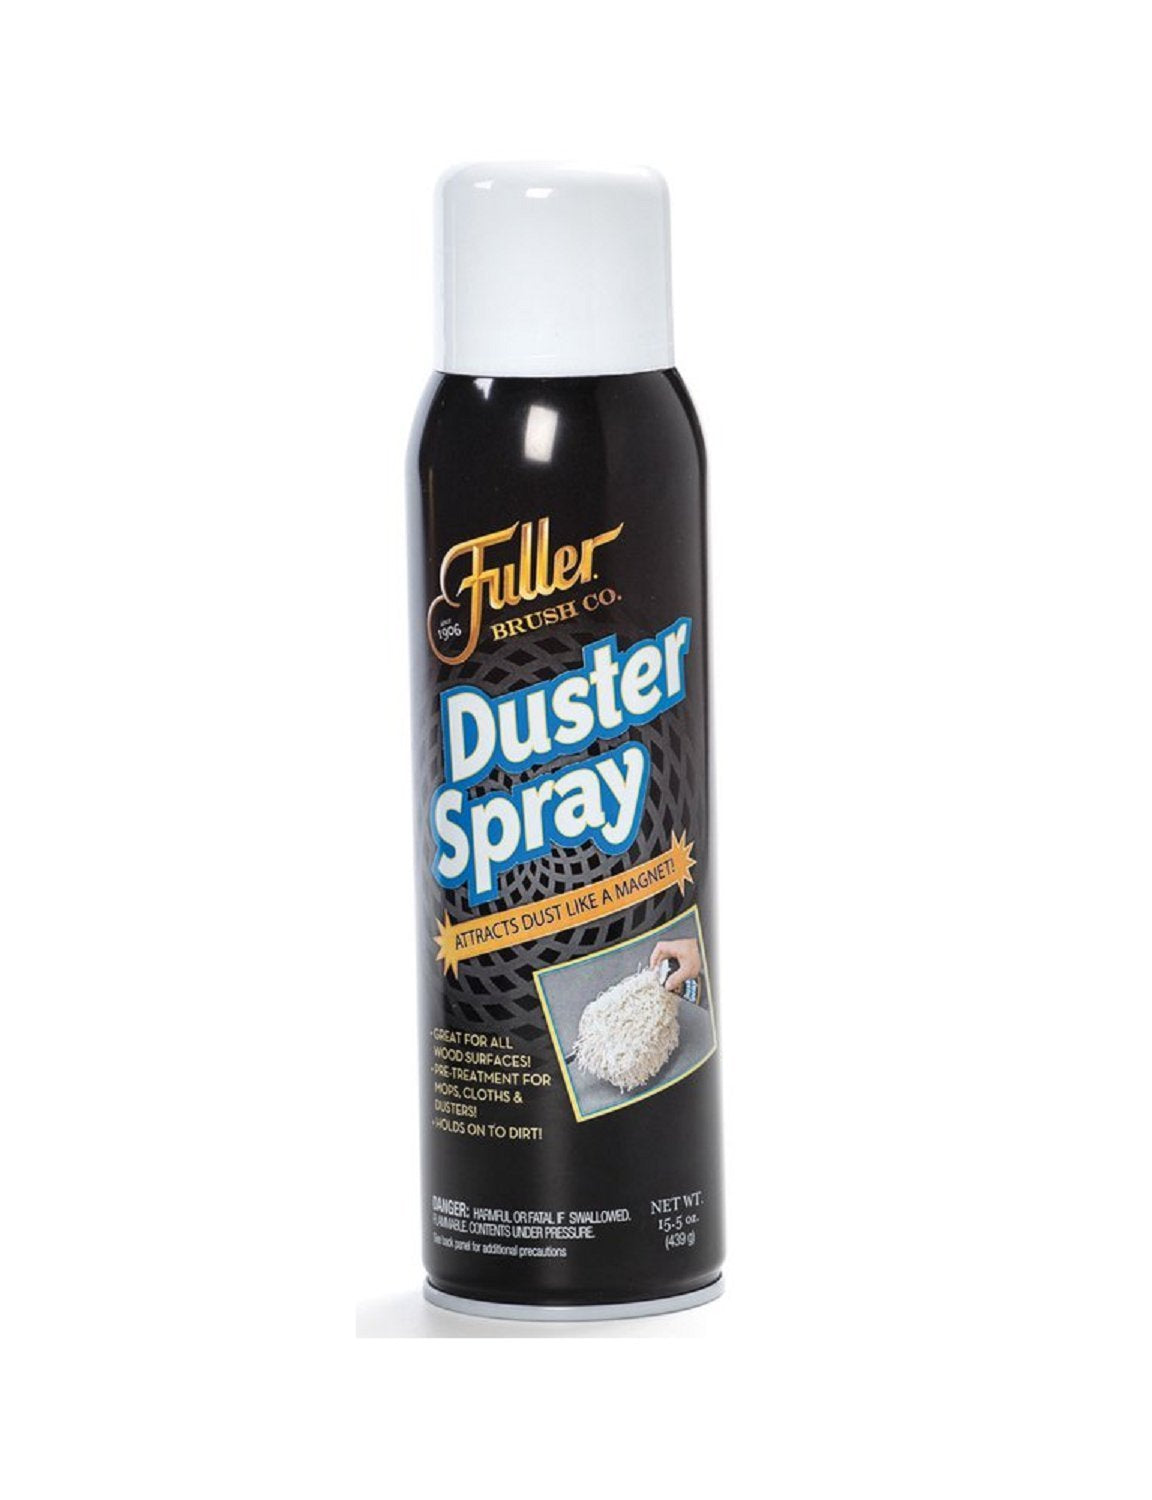 Duster Spray - Wood & Multi Surface Dust Attractor & Cleaner – 15.5 oz